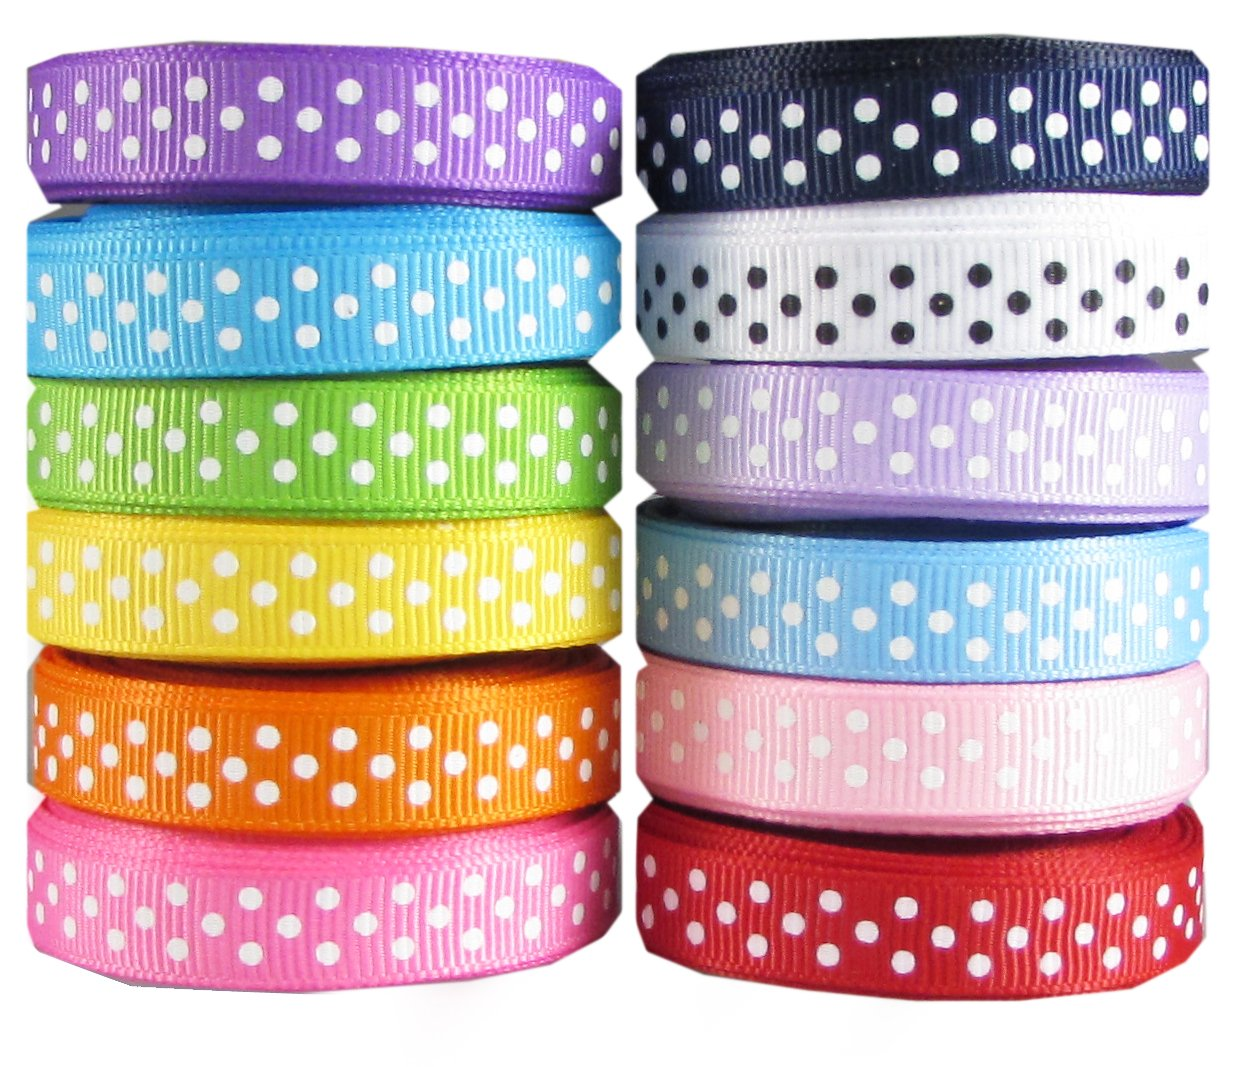 Polka Dot Ribbon for Crafts-Hipgirl 60 Yards 3/8'' Grosgrain Fabric Ribbon Set For Gift Package Wrapping, Hair Bow Clips & Accessories Making, Sewing, Wedding Decor, Boy Girl Baby Shower-(12x5yd Swiss)